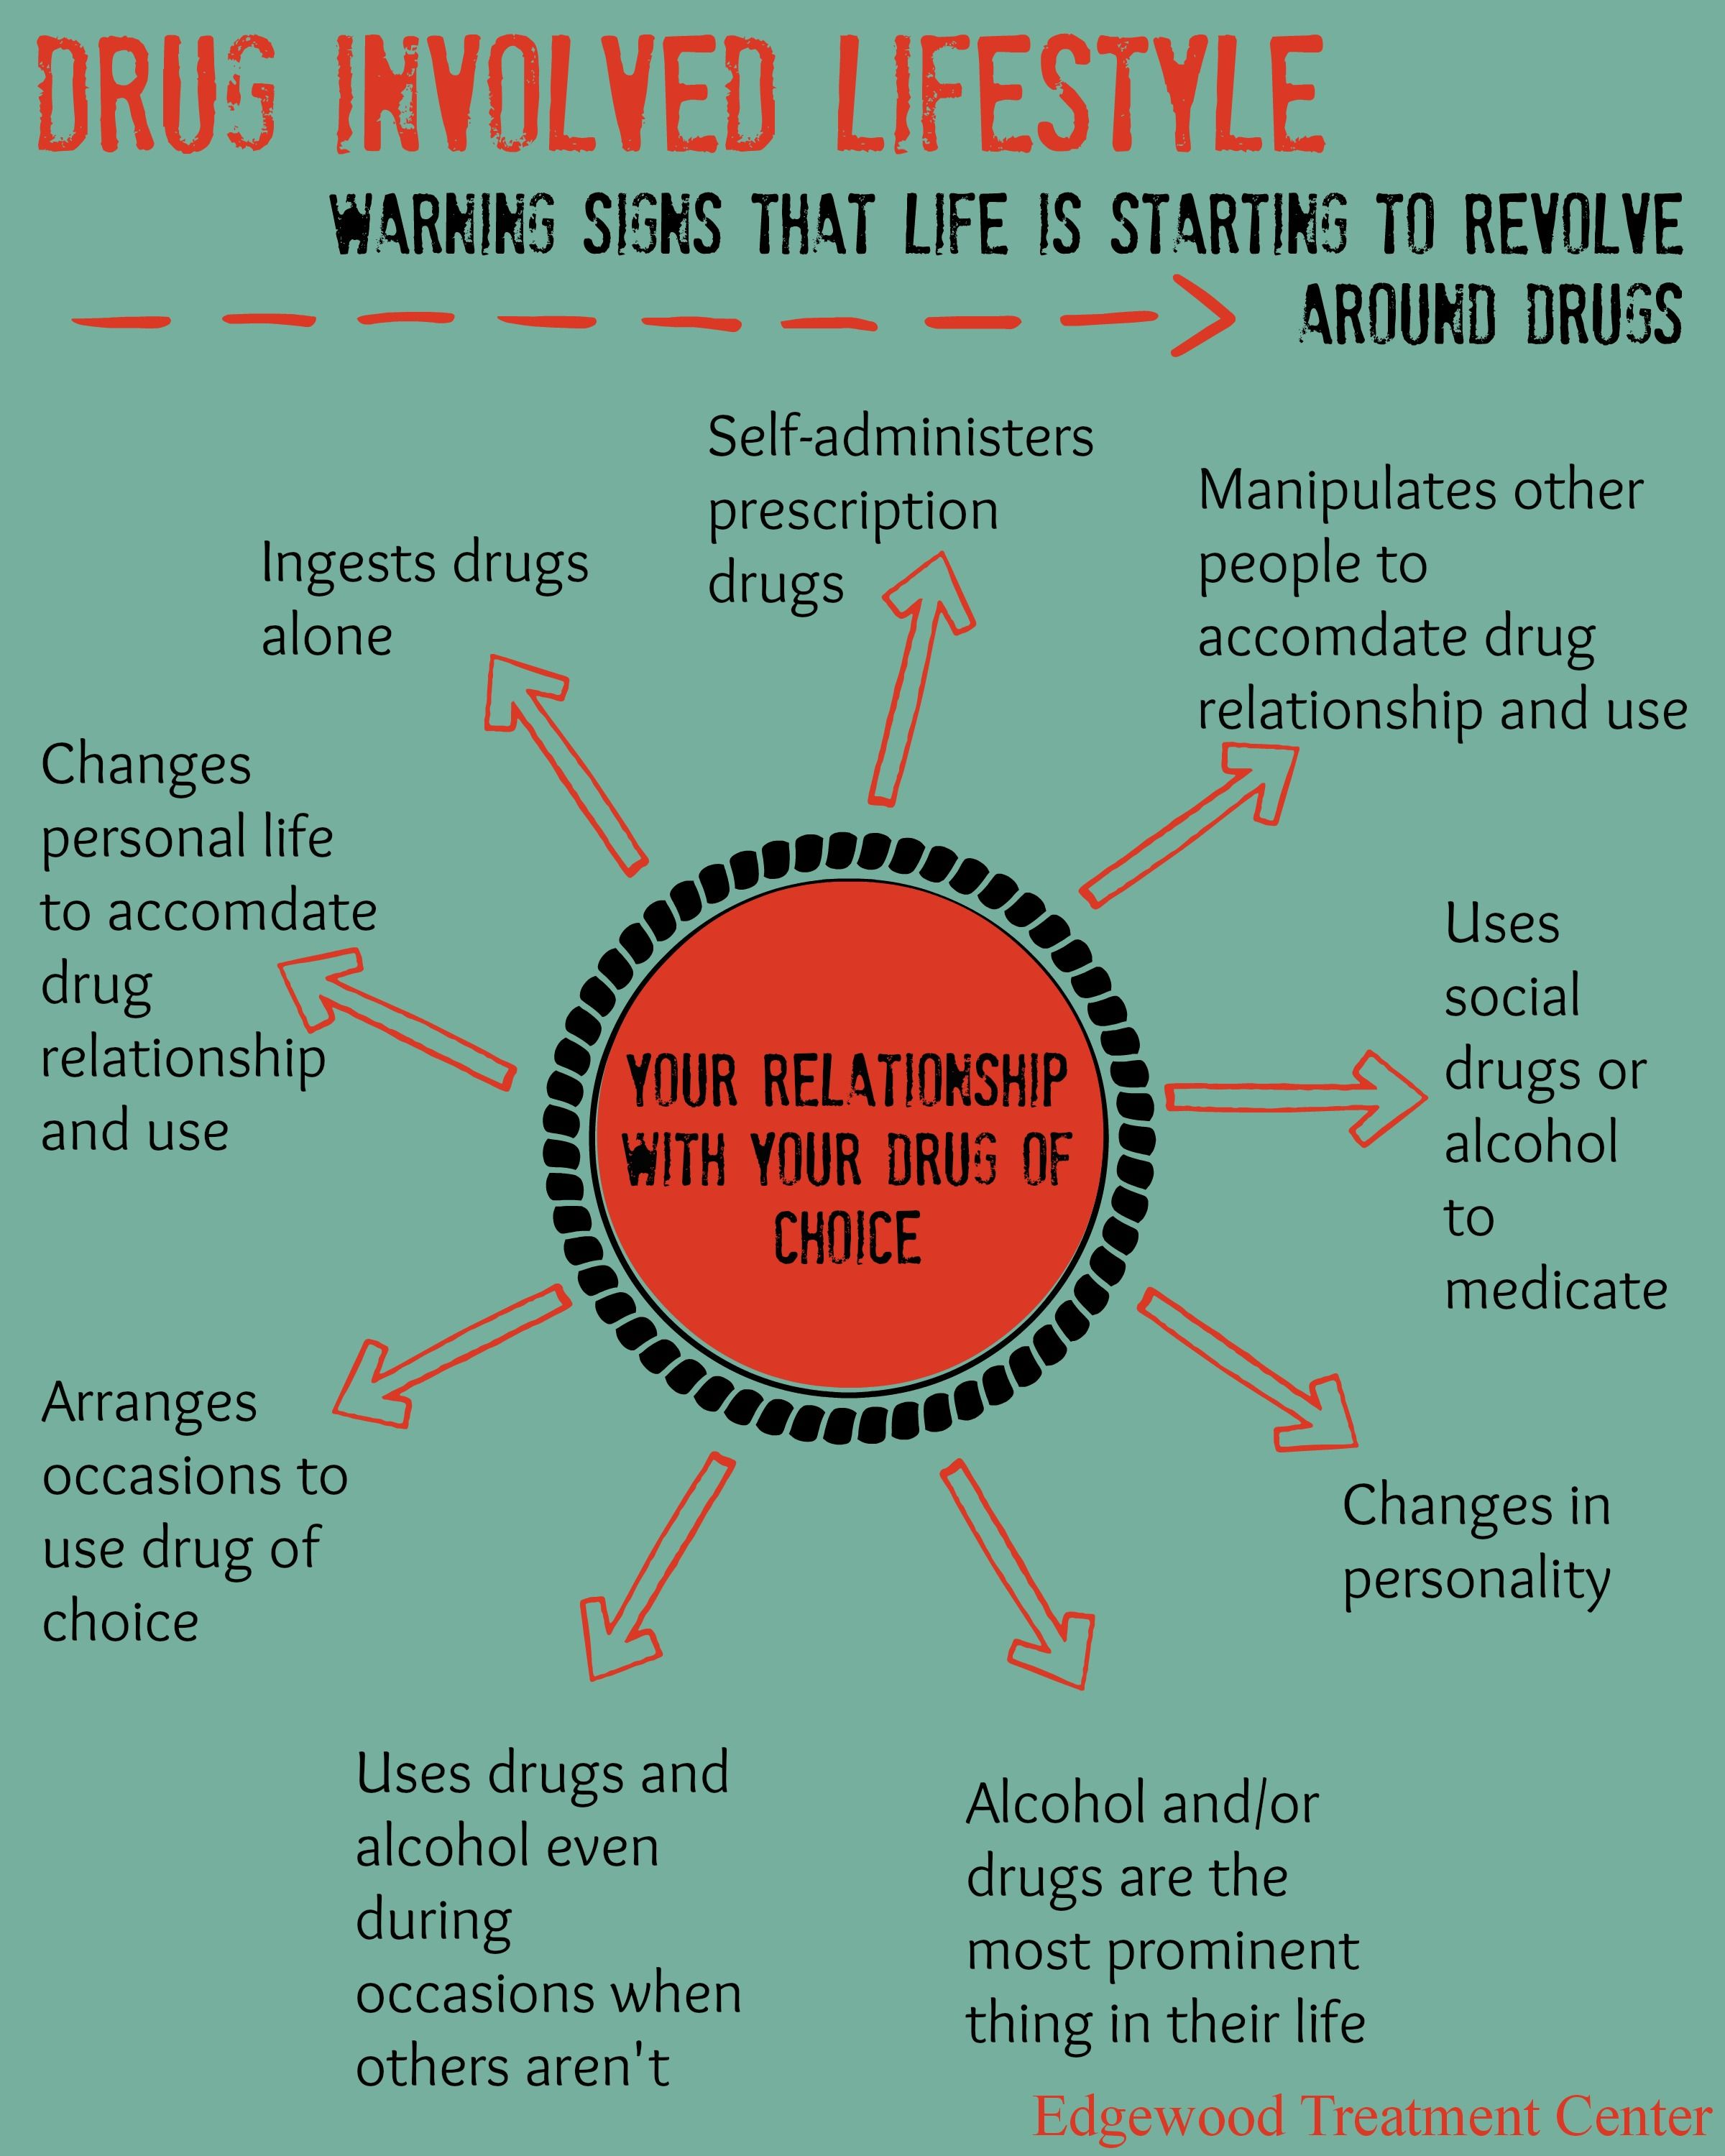 Warning Signs Of Drug Usage